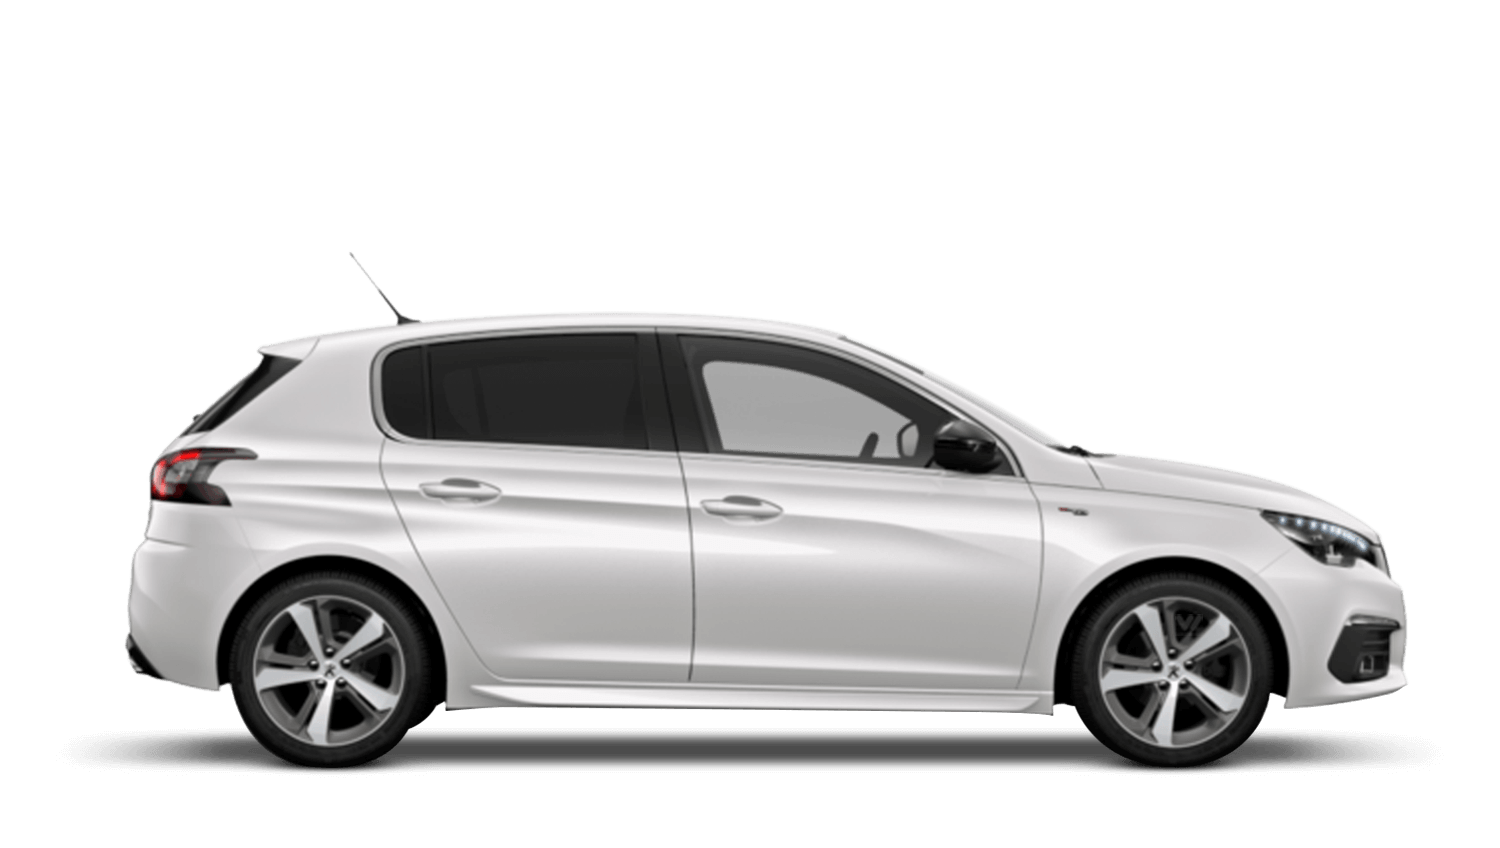 Pearlescent White New Peugeot 308